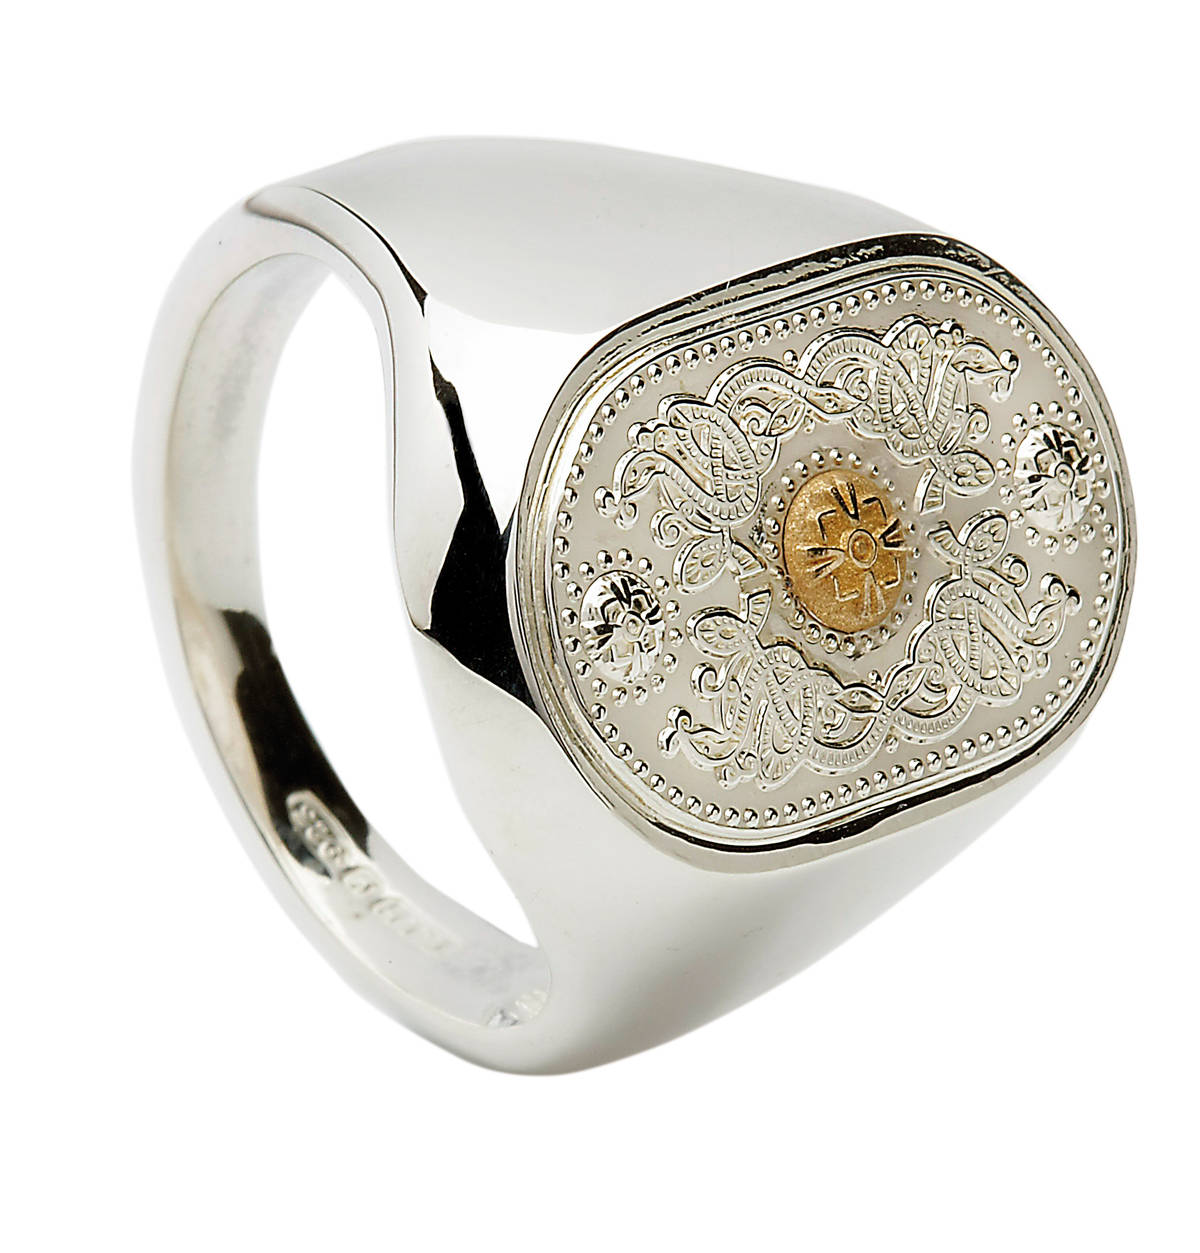 Arda Small Silver (20Mm) Gents Signet Ring & 14 carat Yellow Gold Boss